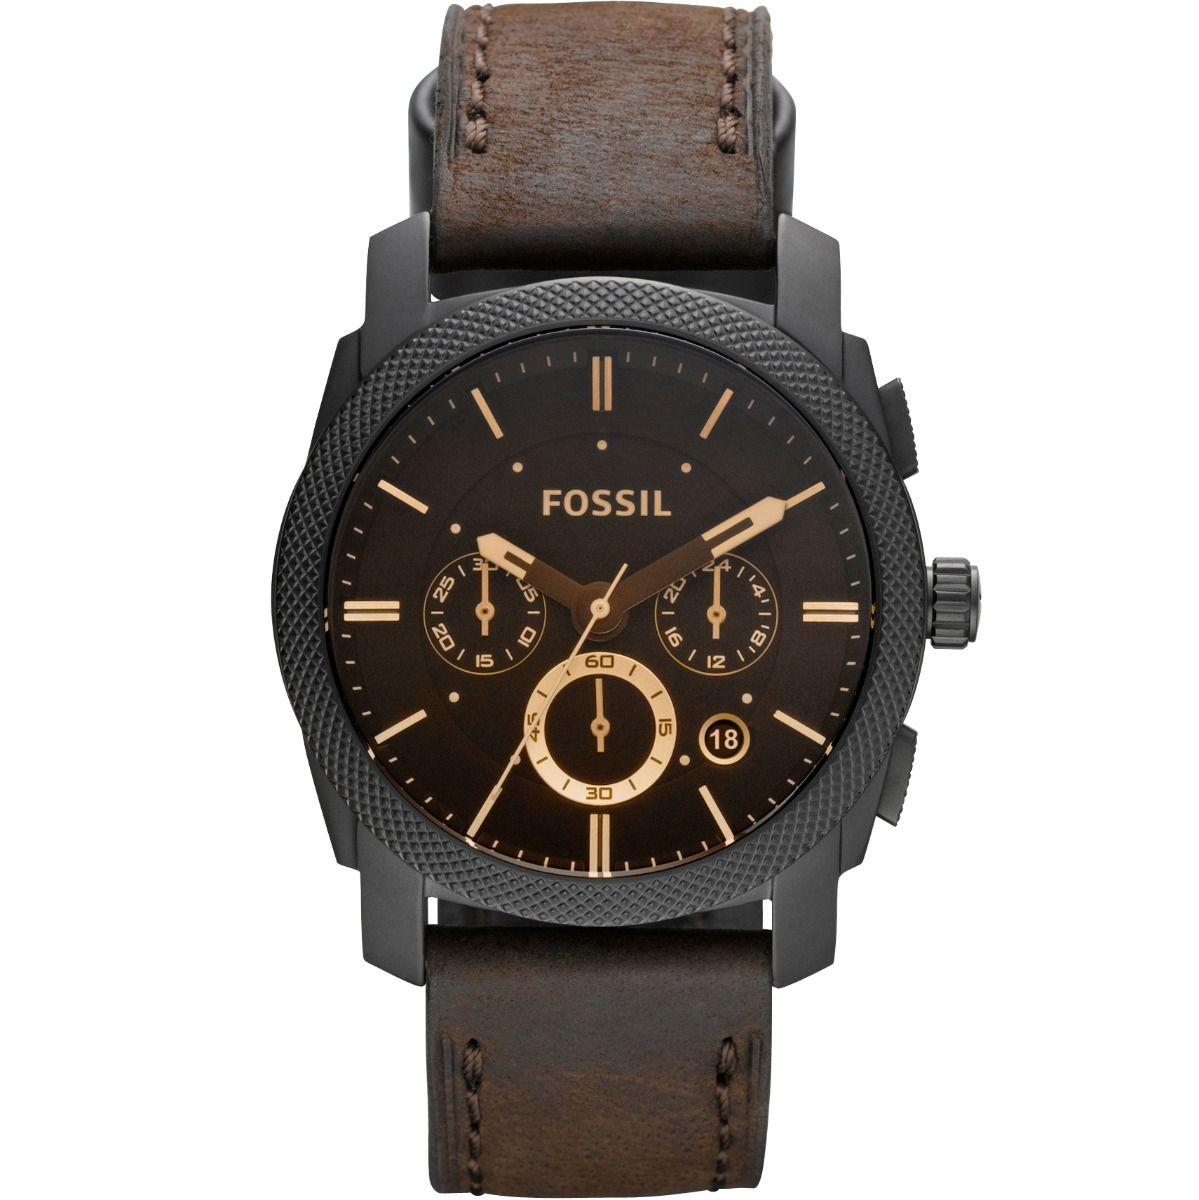 best chronograph watch: Fossil FS4656 Machine Chronograph Brown Leather Strap